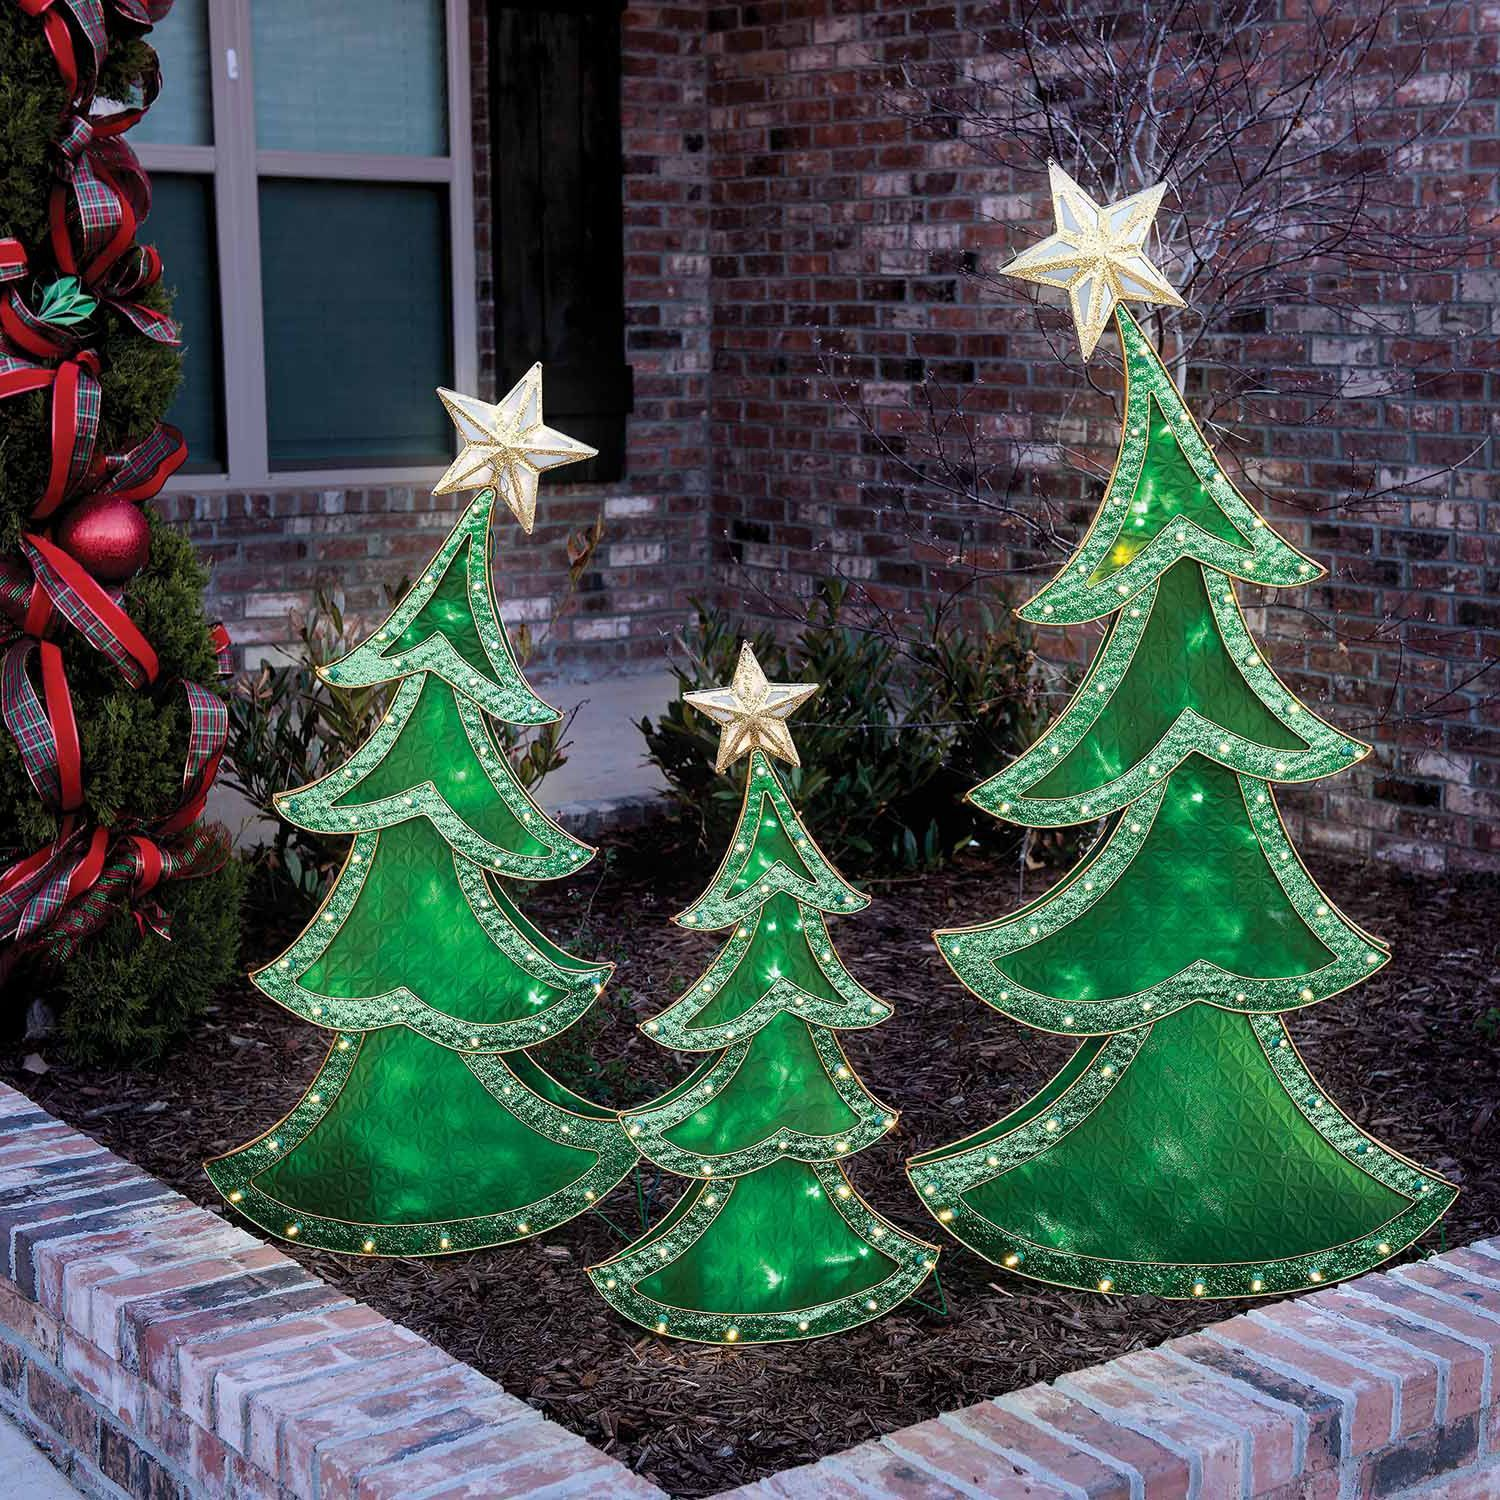 led decorative christmas trees set of 3 36 48 and 60 17998 at sams club